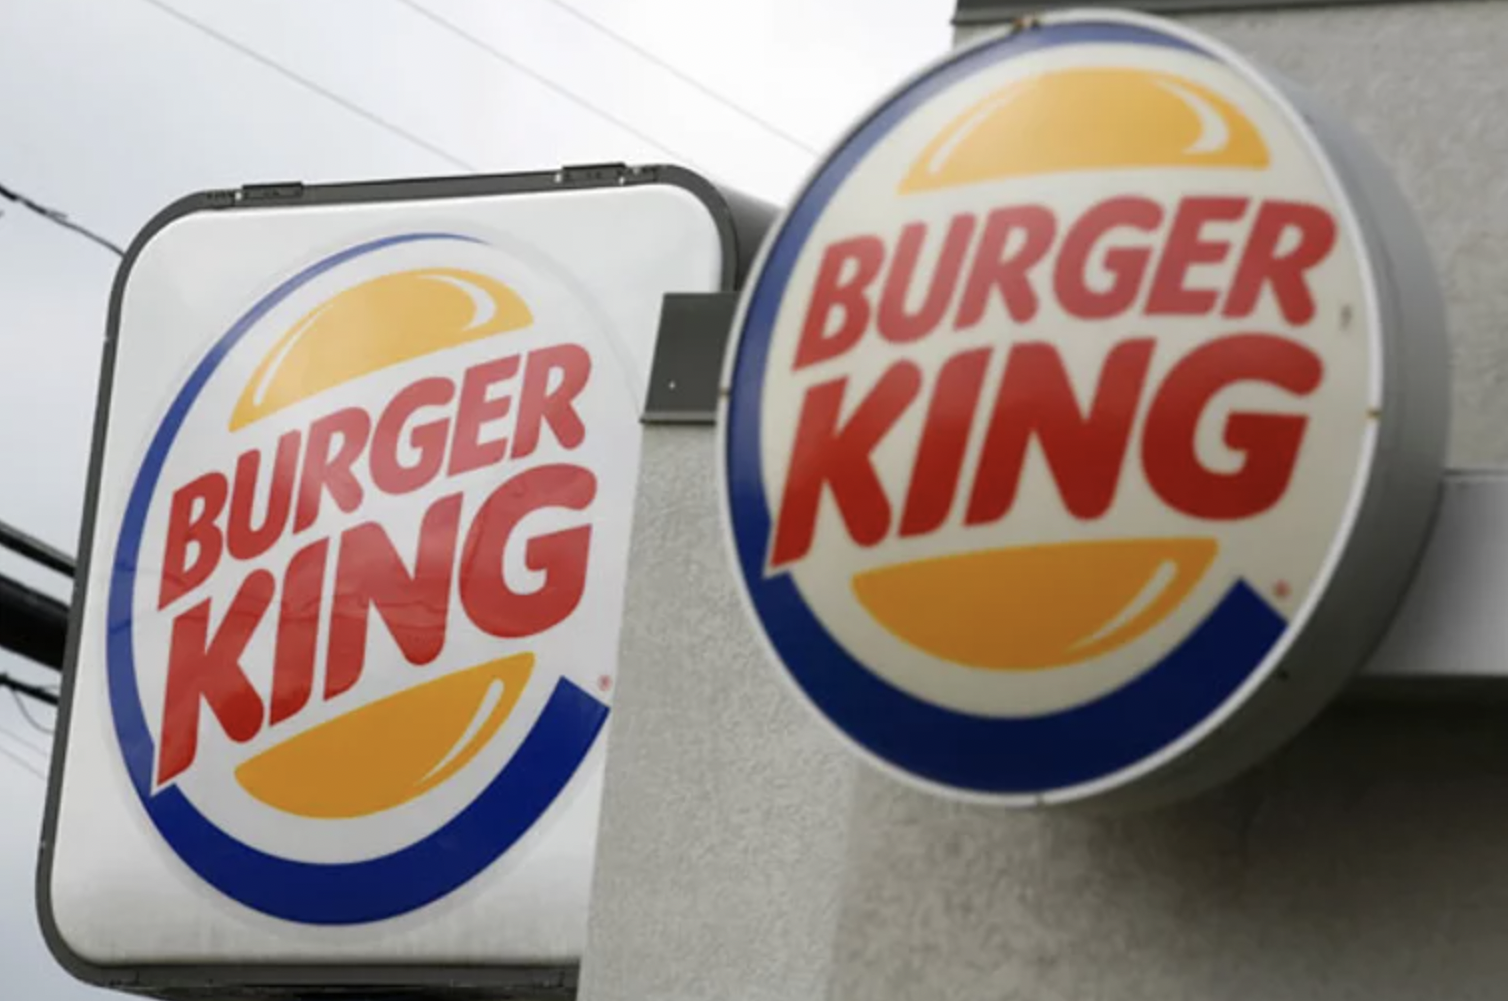 Burger King donating up to $250K to LGBT group in swipe at Chick-fil-A